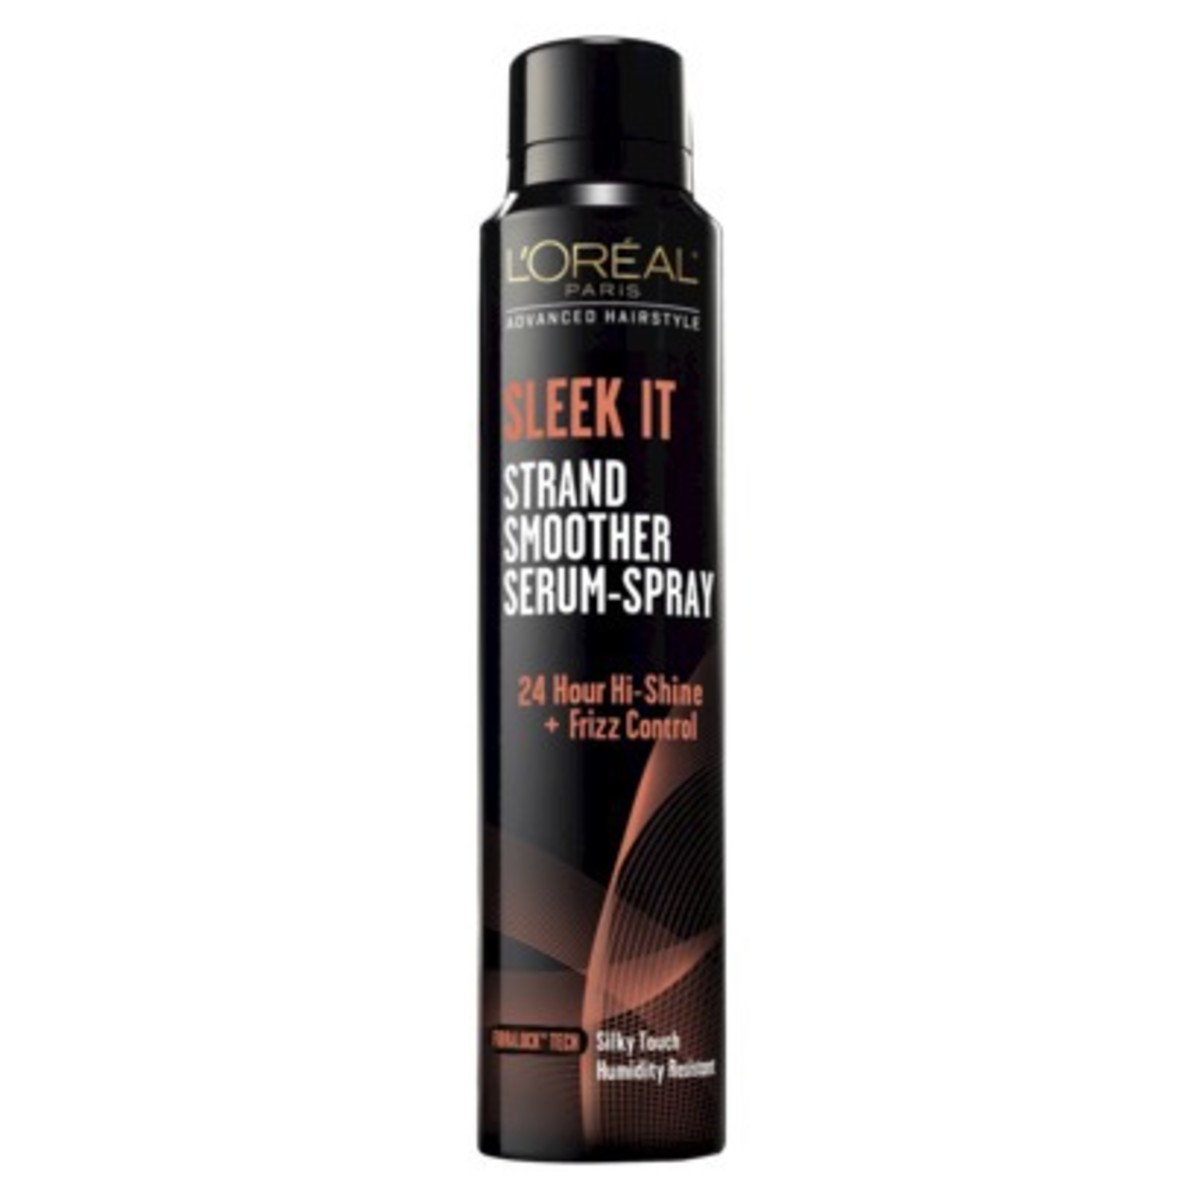 L'Oreal Paris Advanced Hairstyle Sleek It Strand-Smoother Serum Spray